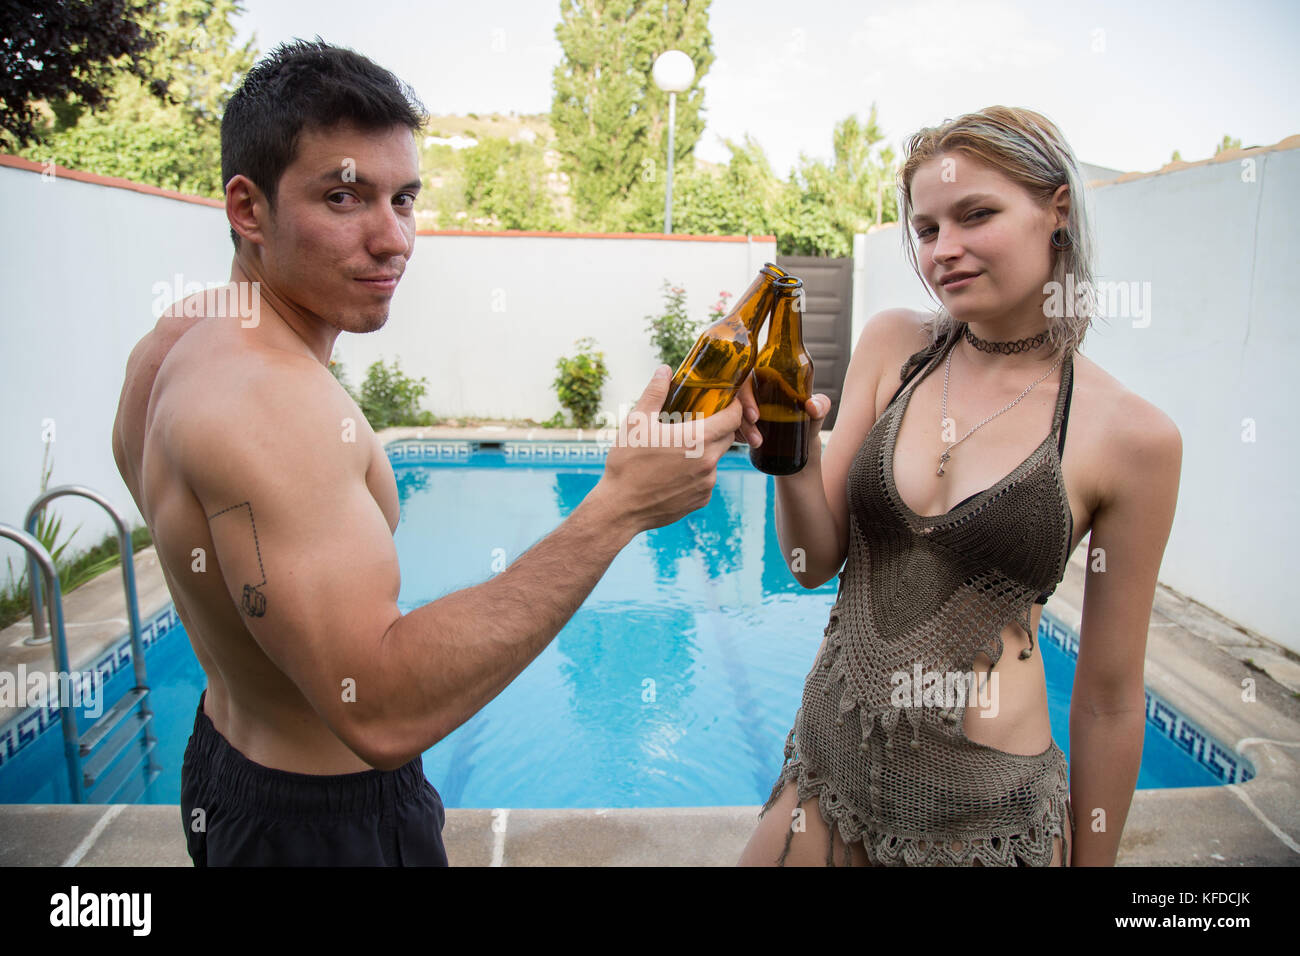 79ea825a47 Spanish boy and young Russian woman in swimsuits posing in pool and  clinking beer bottles.